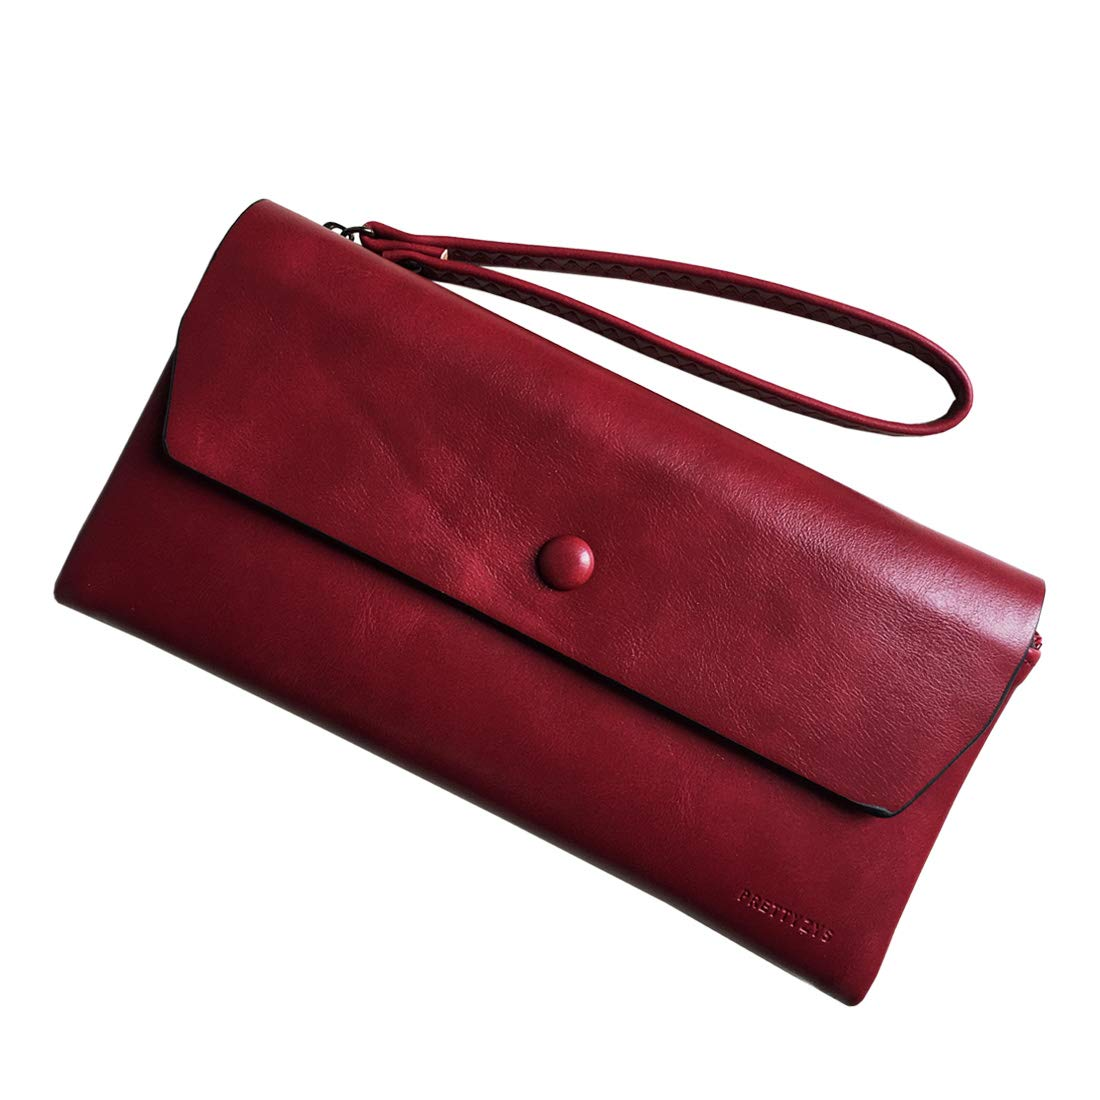 Rfid women's wallets ladies Leather Wristlet organizer with phone slot large capacity (Red2)